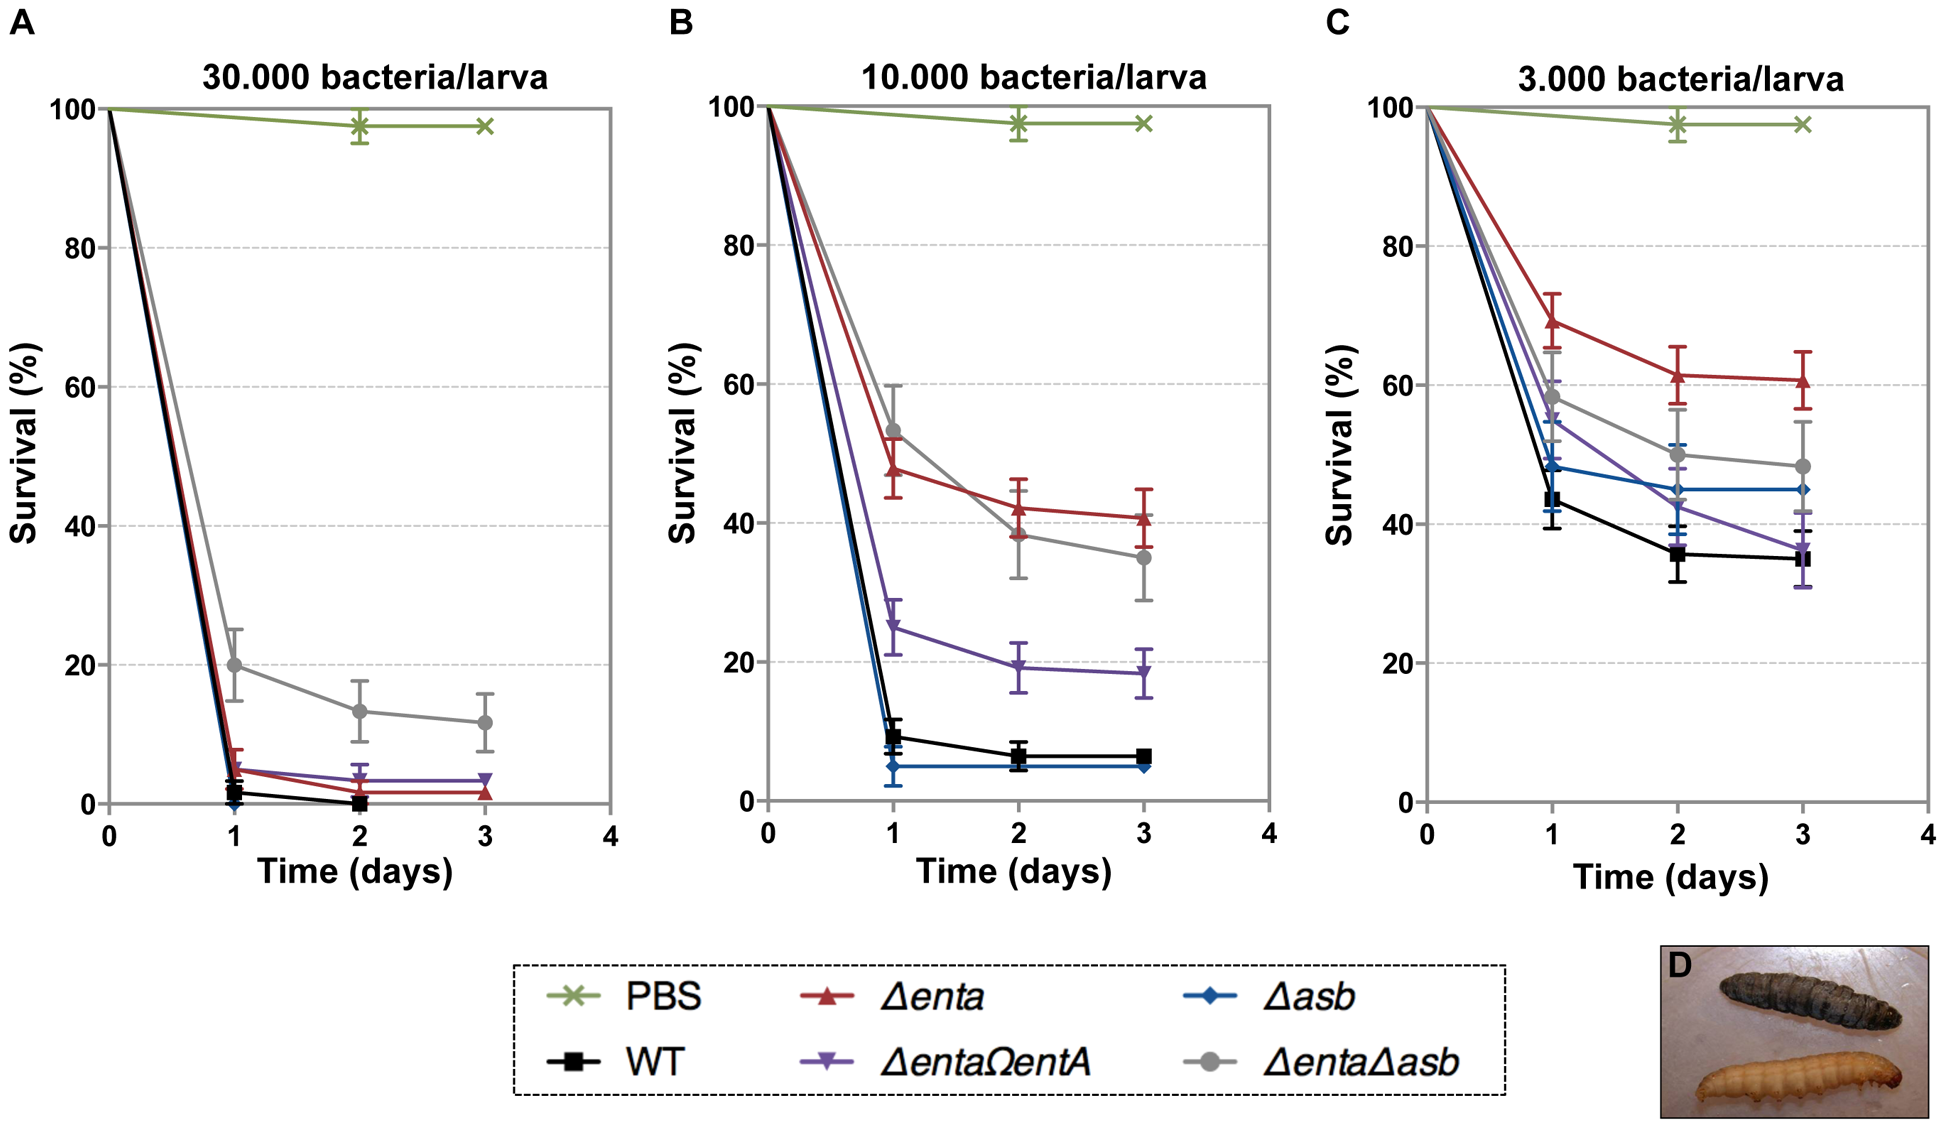 Effects of siderophore deficiency on <i>B. cereus</i> virulence in <i>G. mellonella</i> are dose- and time-dependent.